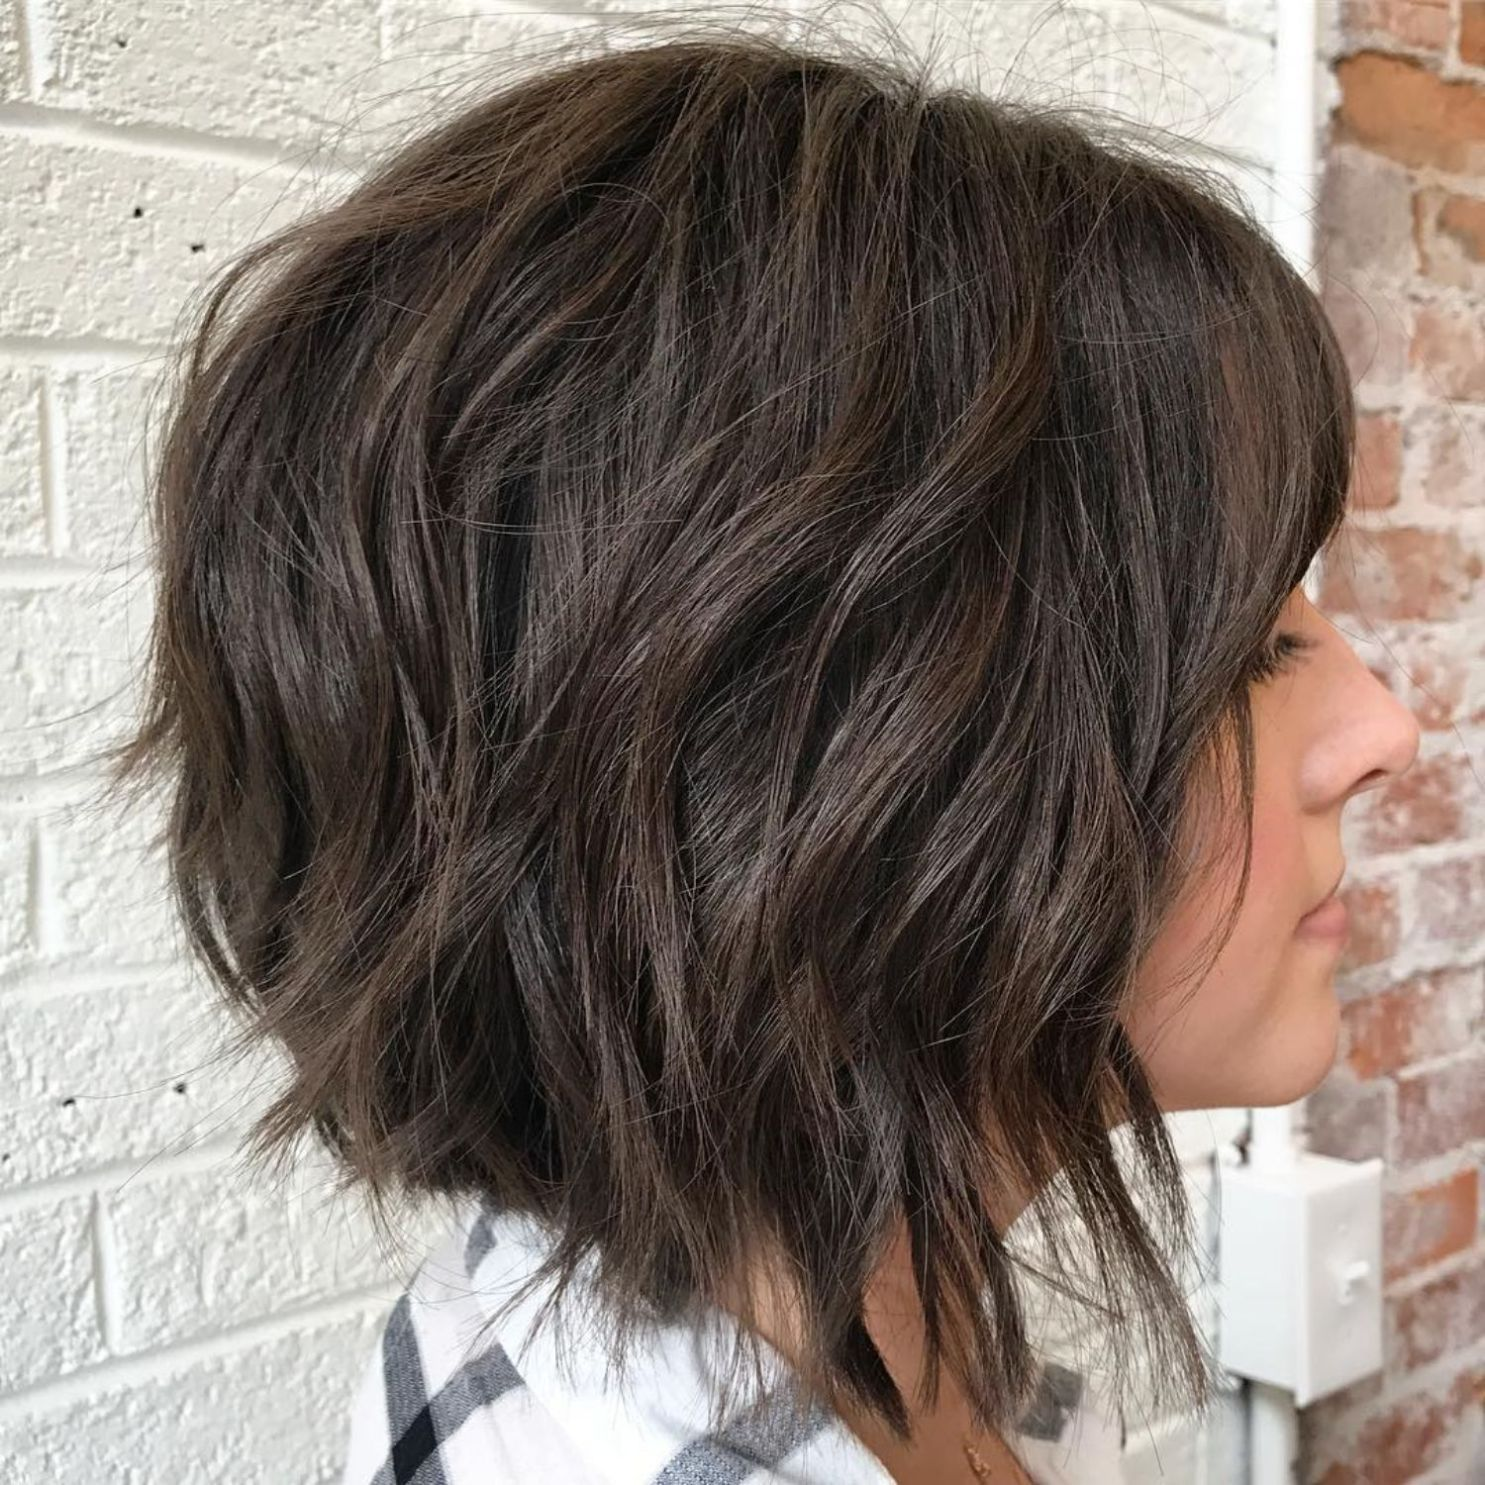 60 Most Magnetizing Hairstyles For Thick Wavy Hair Choppy Bob Hairstyles Wavy Bob Hairstyles Thick Hair Styles